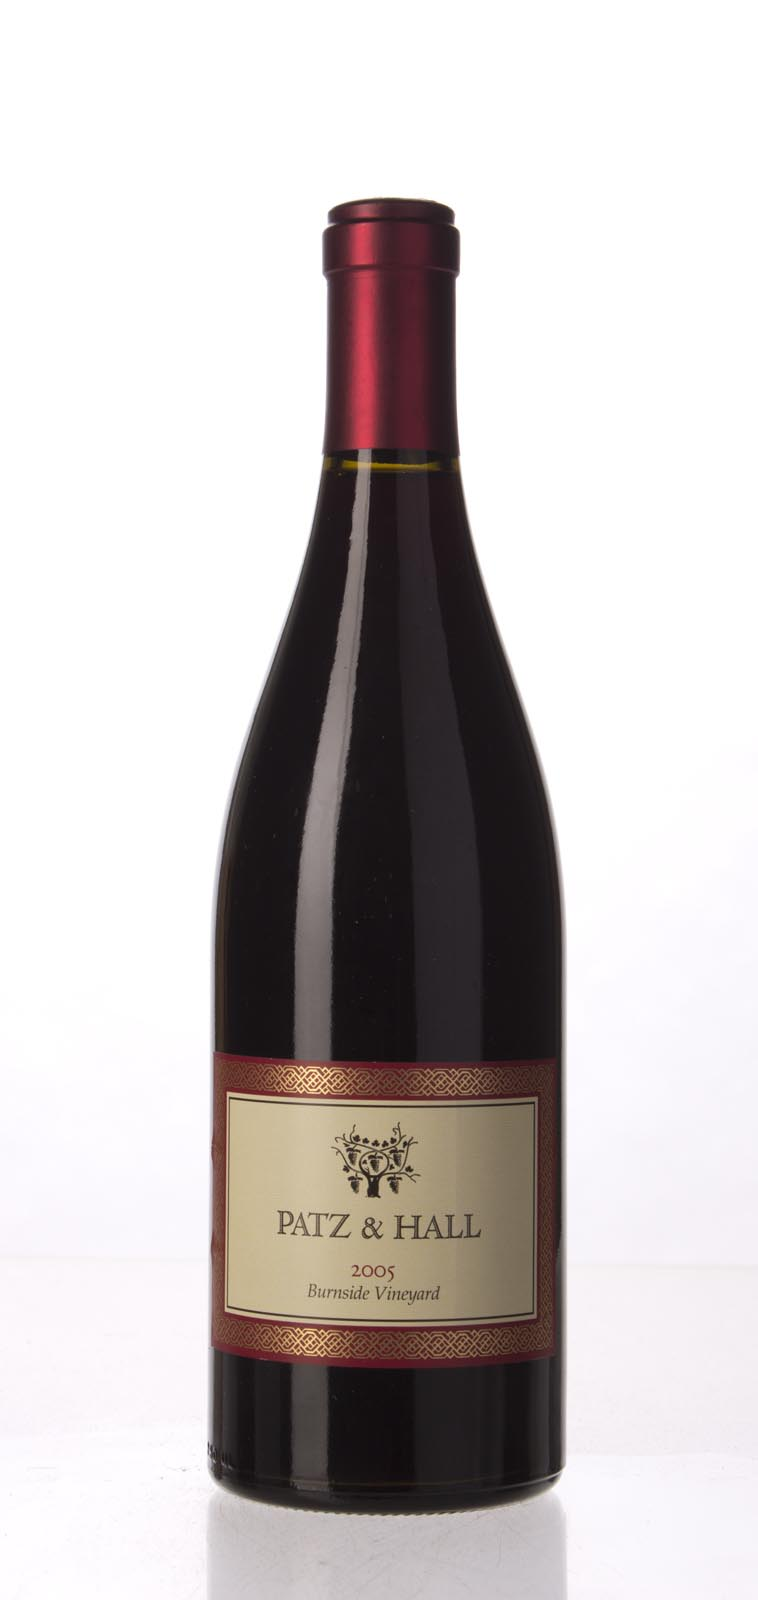 Patz & Hall Pinot Noir Burnside Vineyard 2005, 750mL (ST91) from The BPW - Merchants of rare and fine wines.